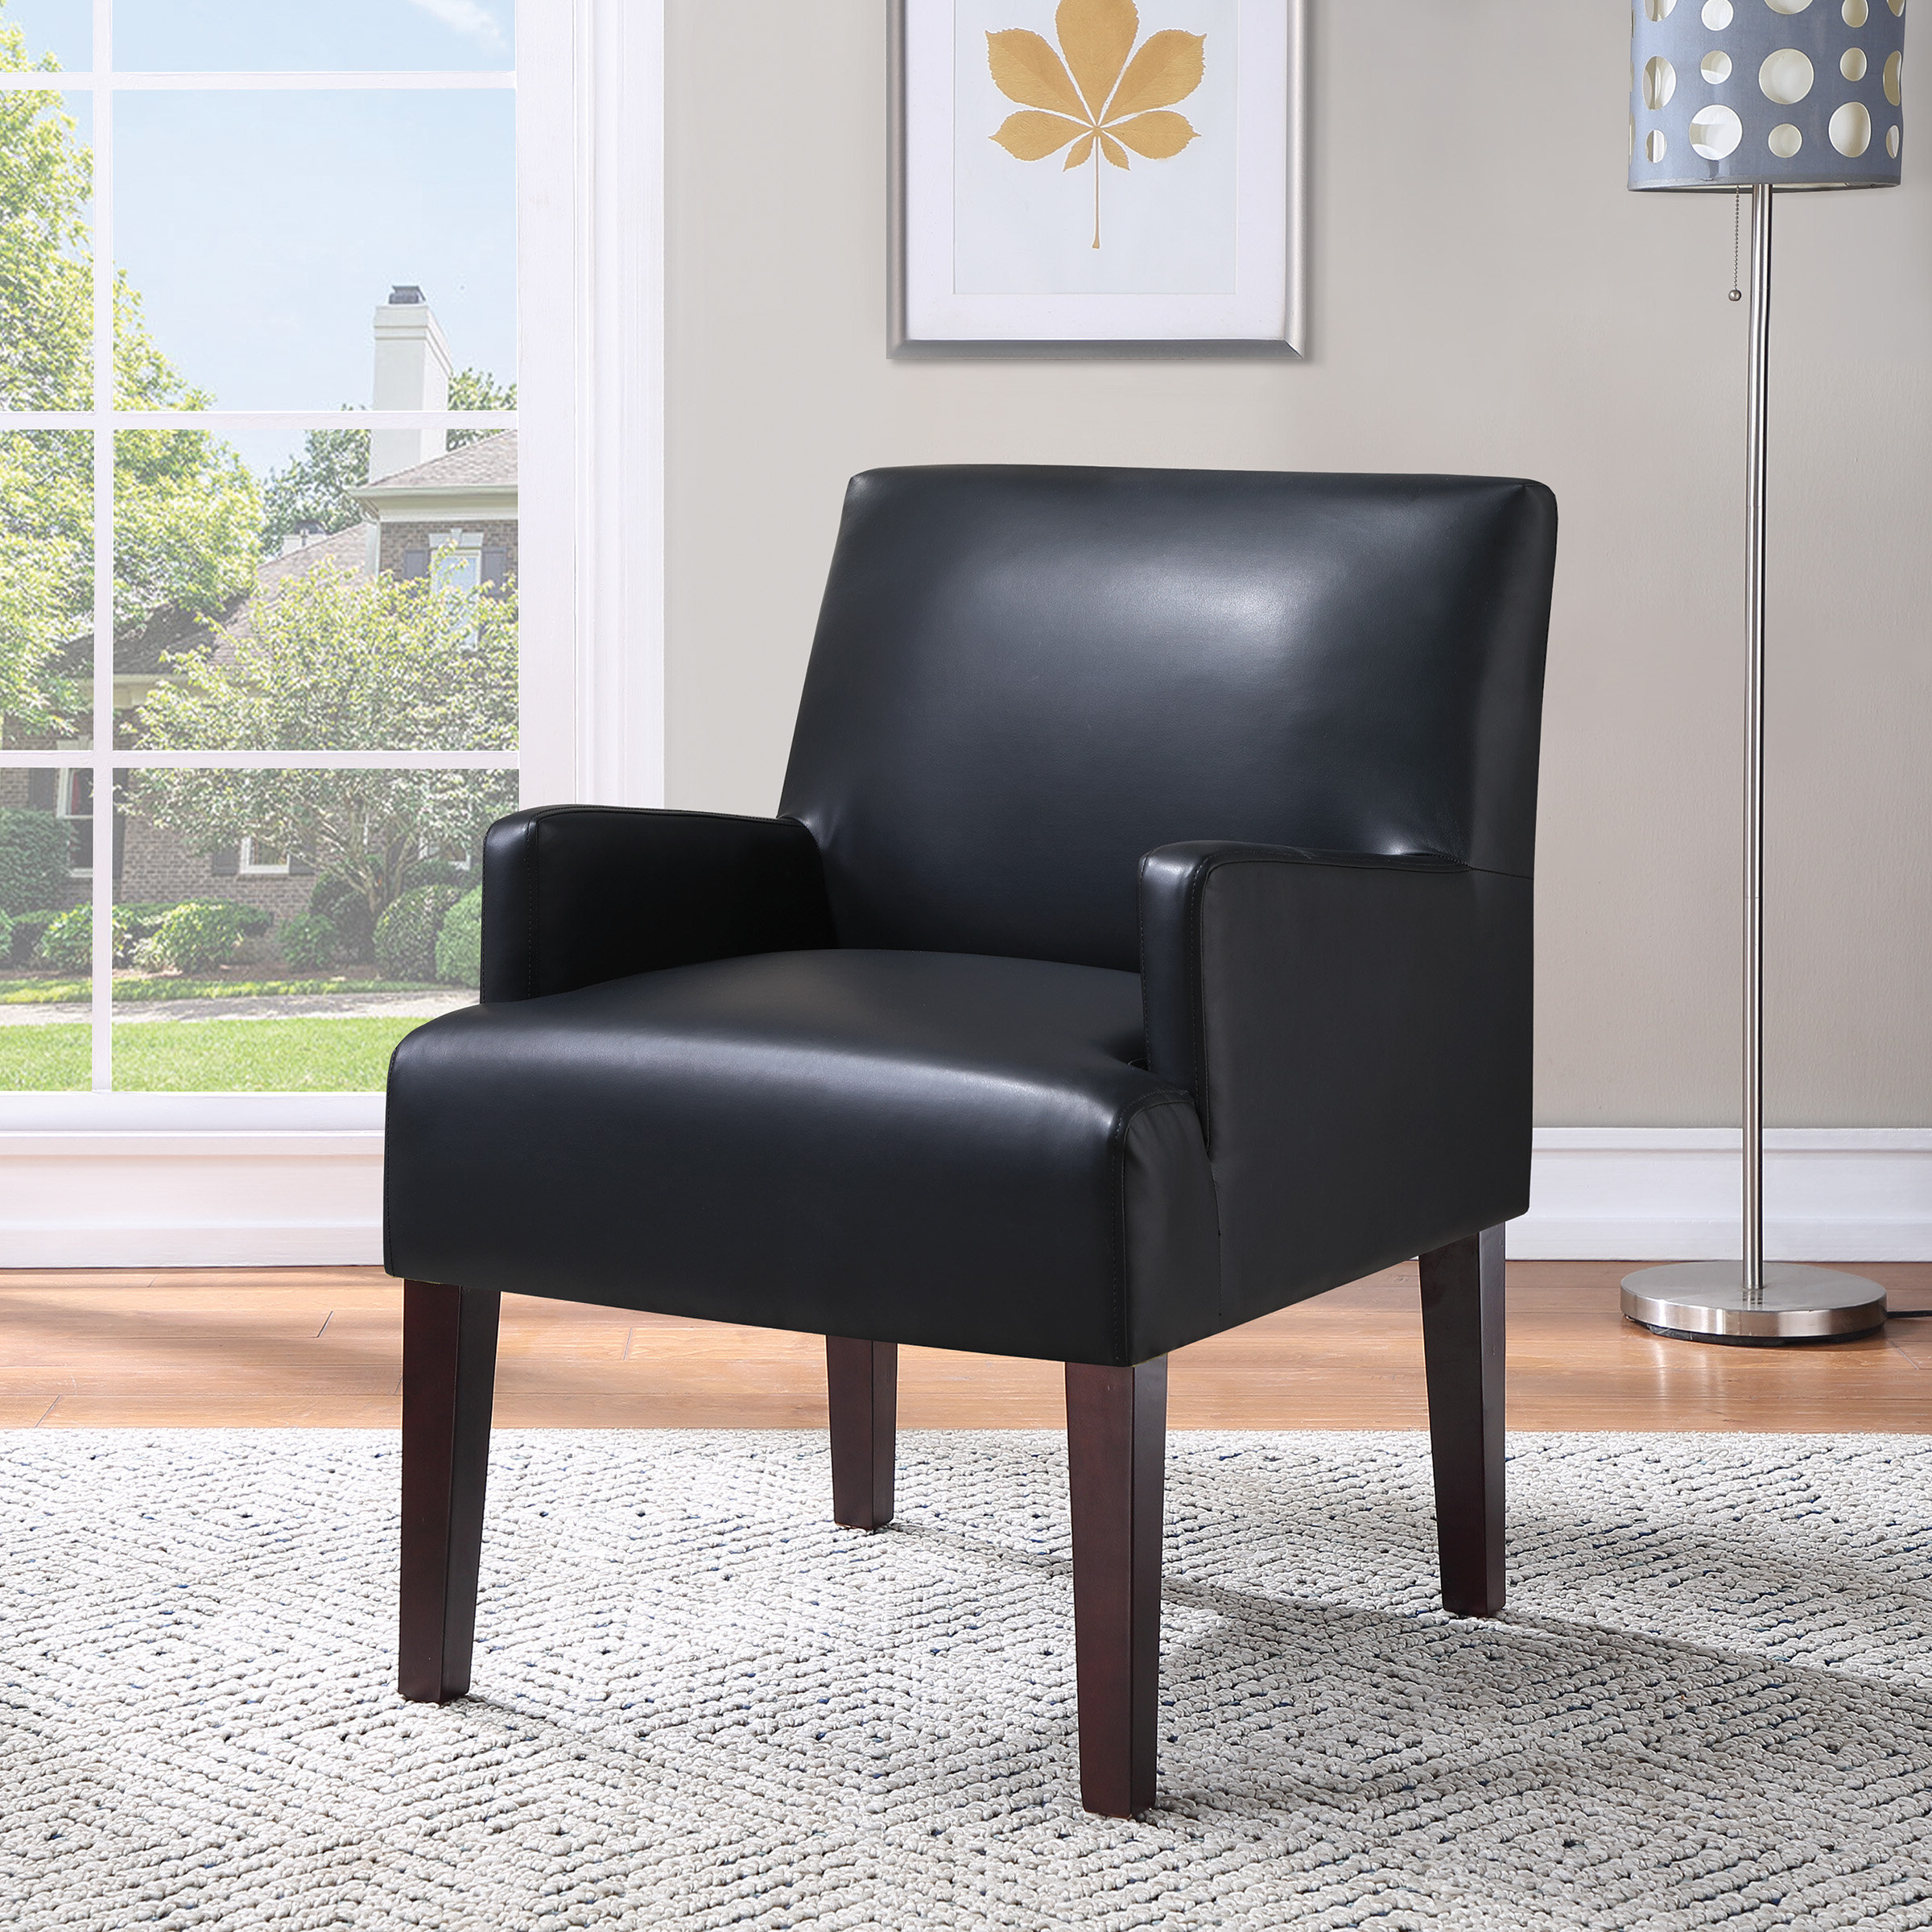 Arm Black Accent Chairs You'll Love In (View 19 of 20)